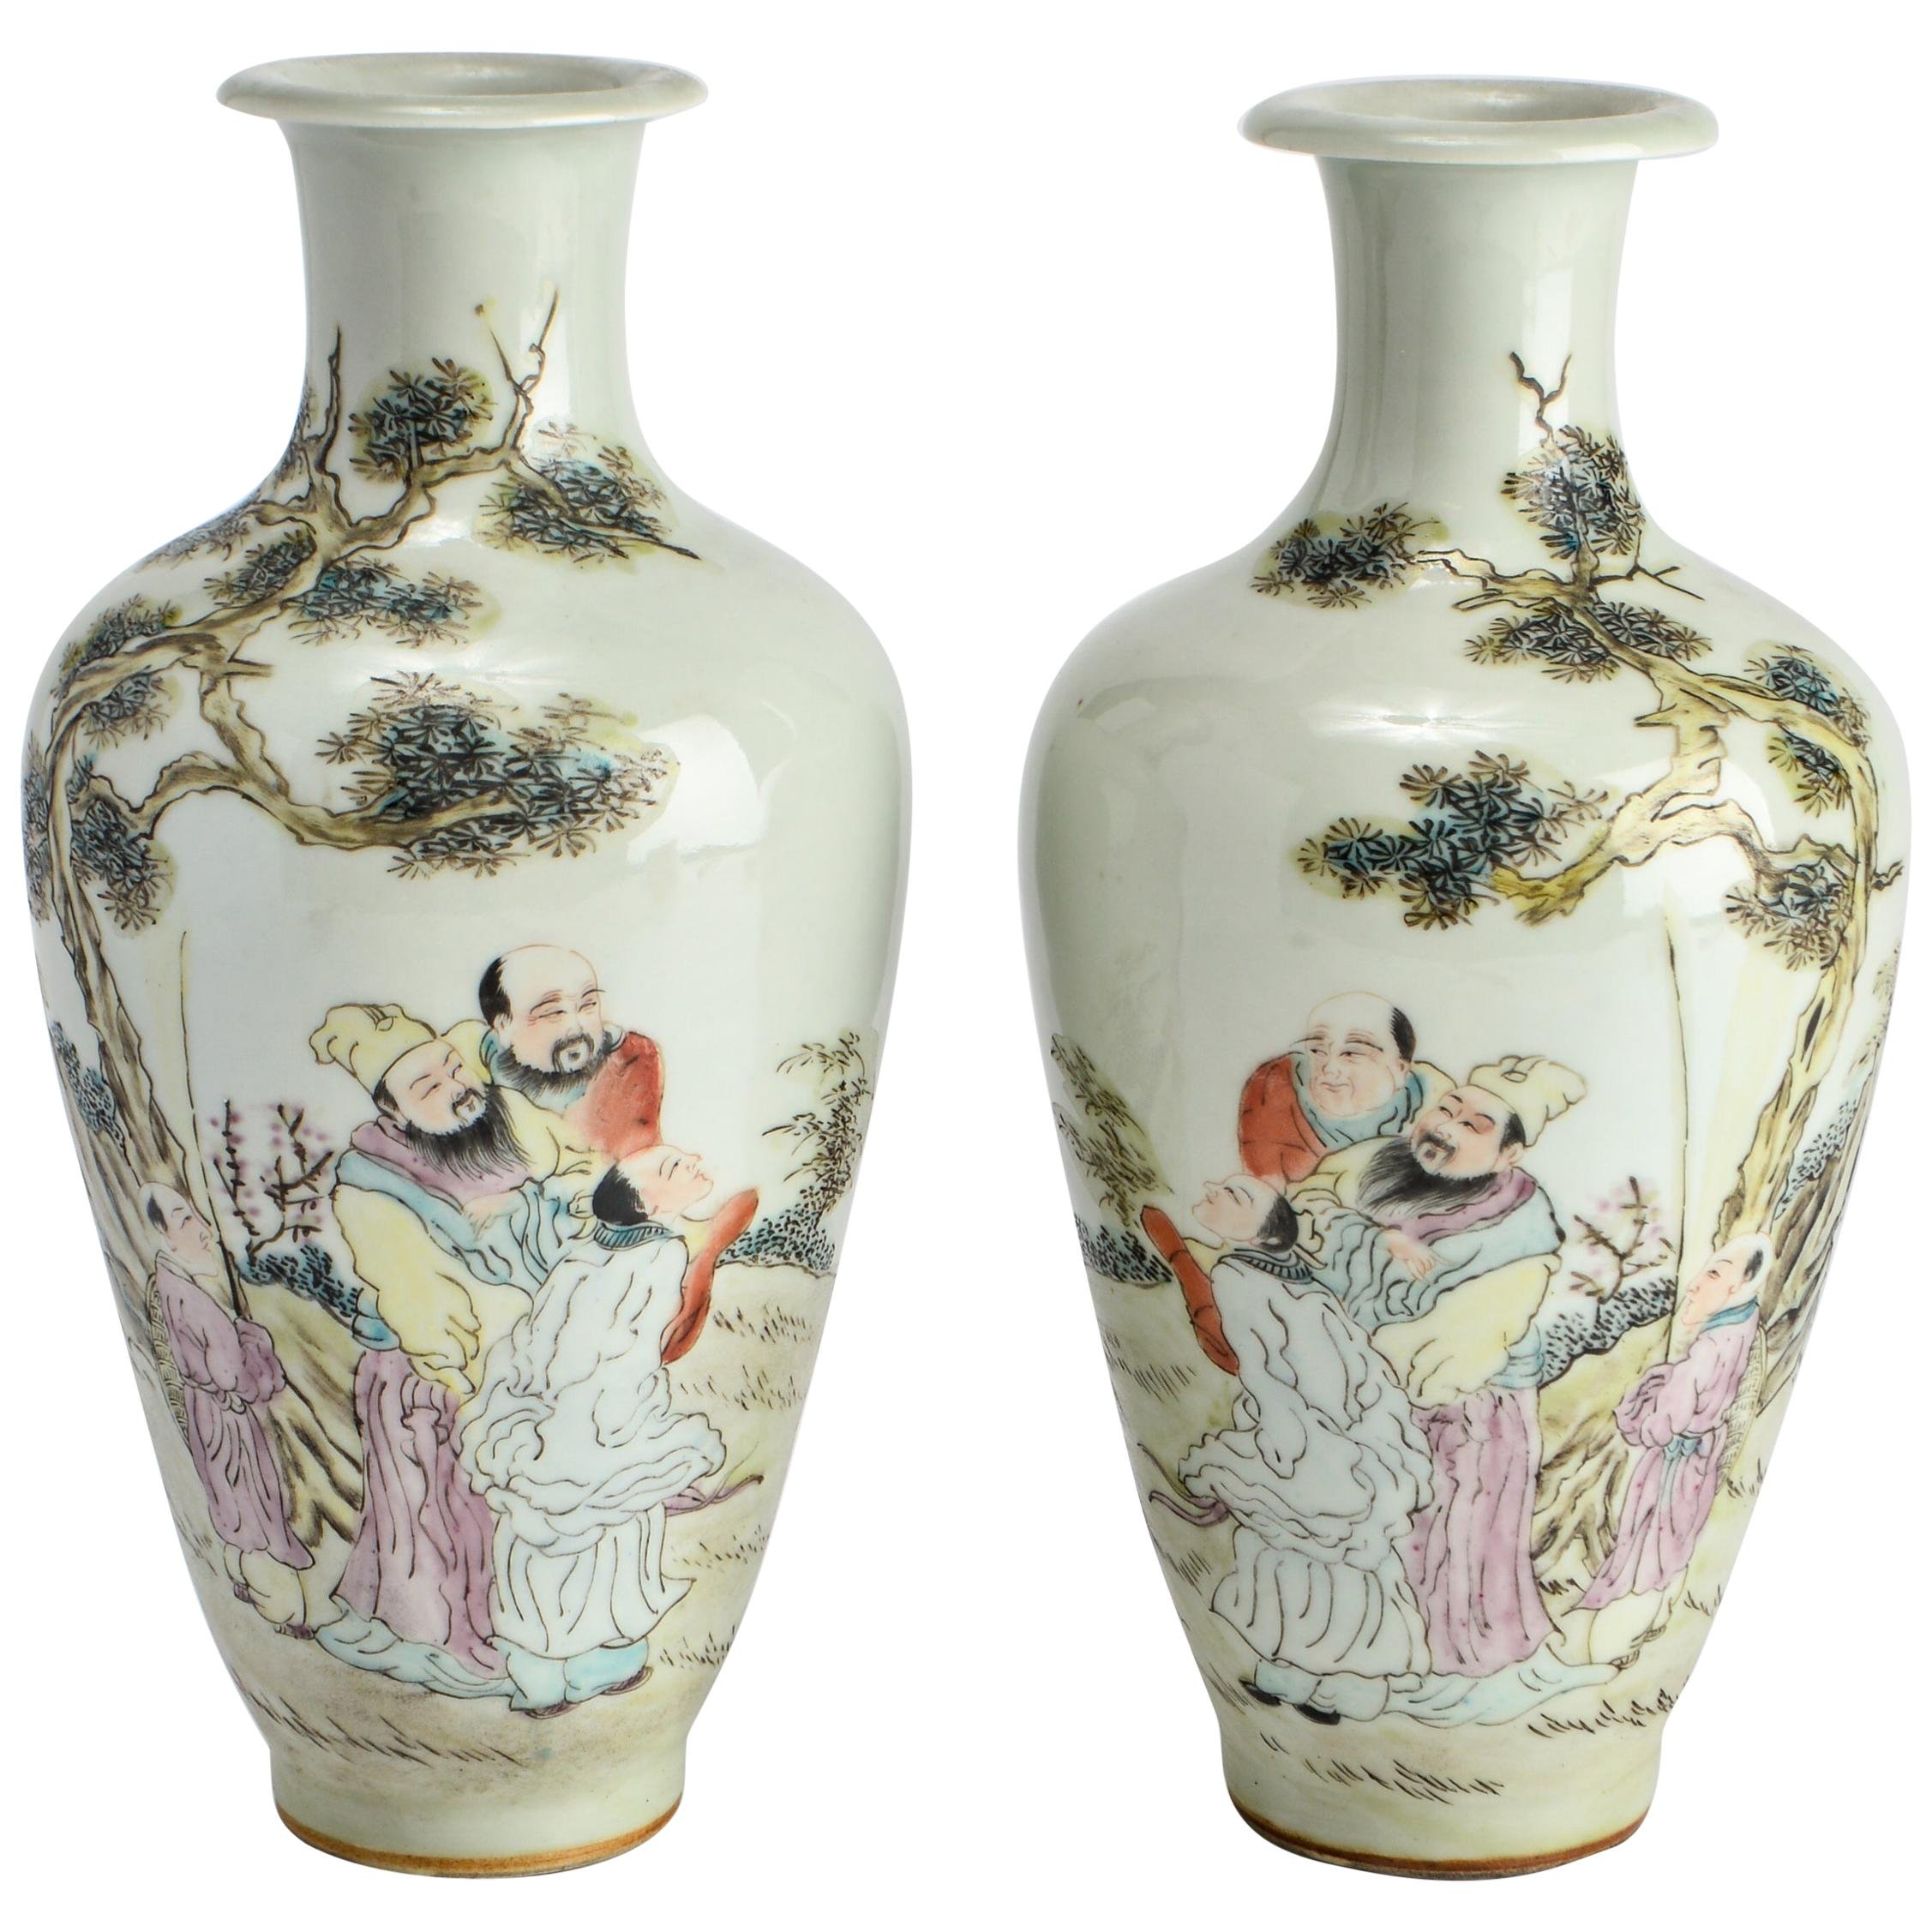 Chinese Porcelain Baluster Vases with Scholars